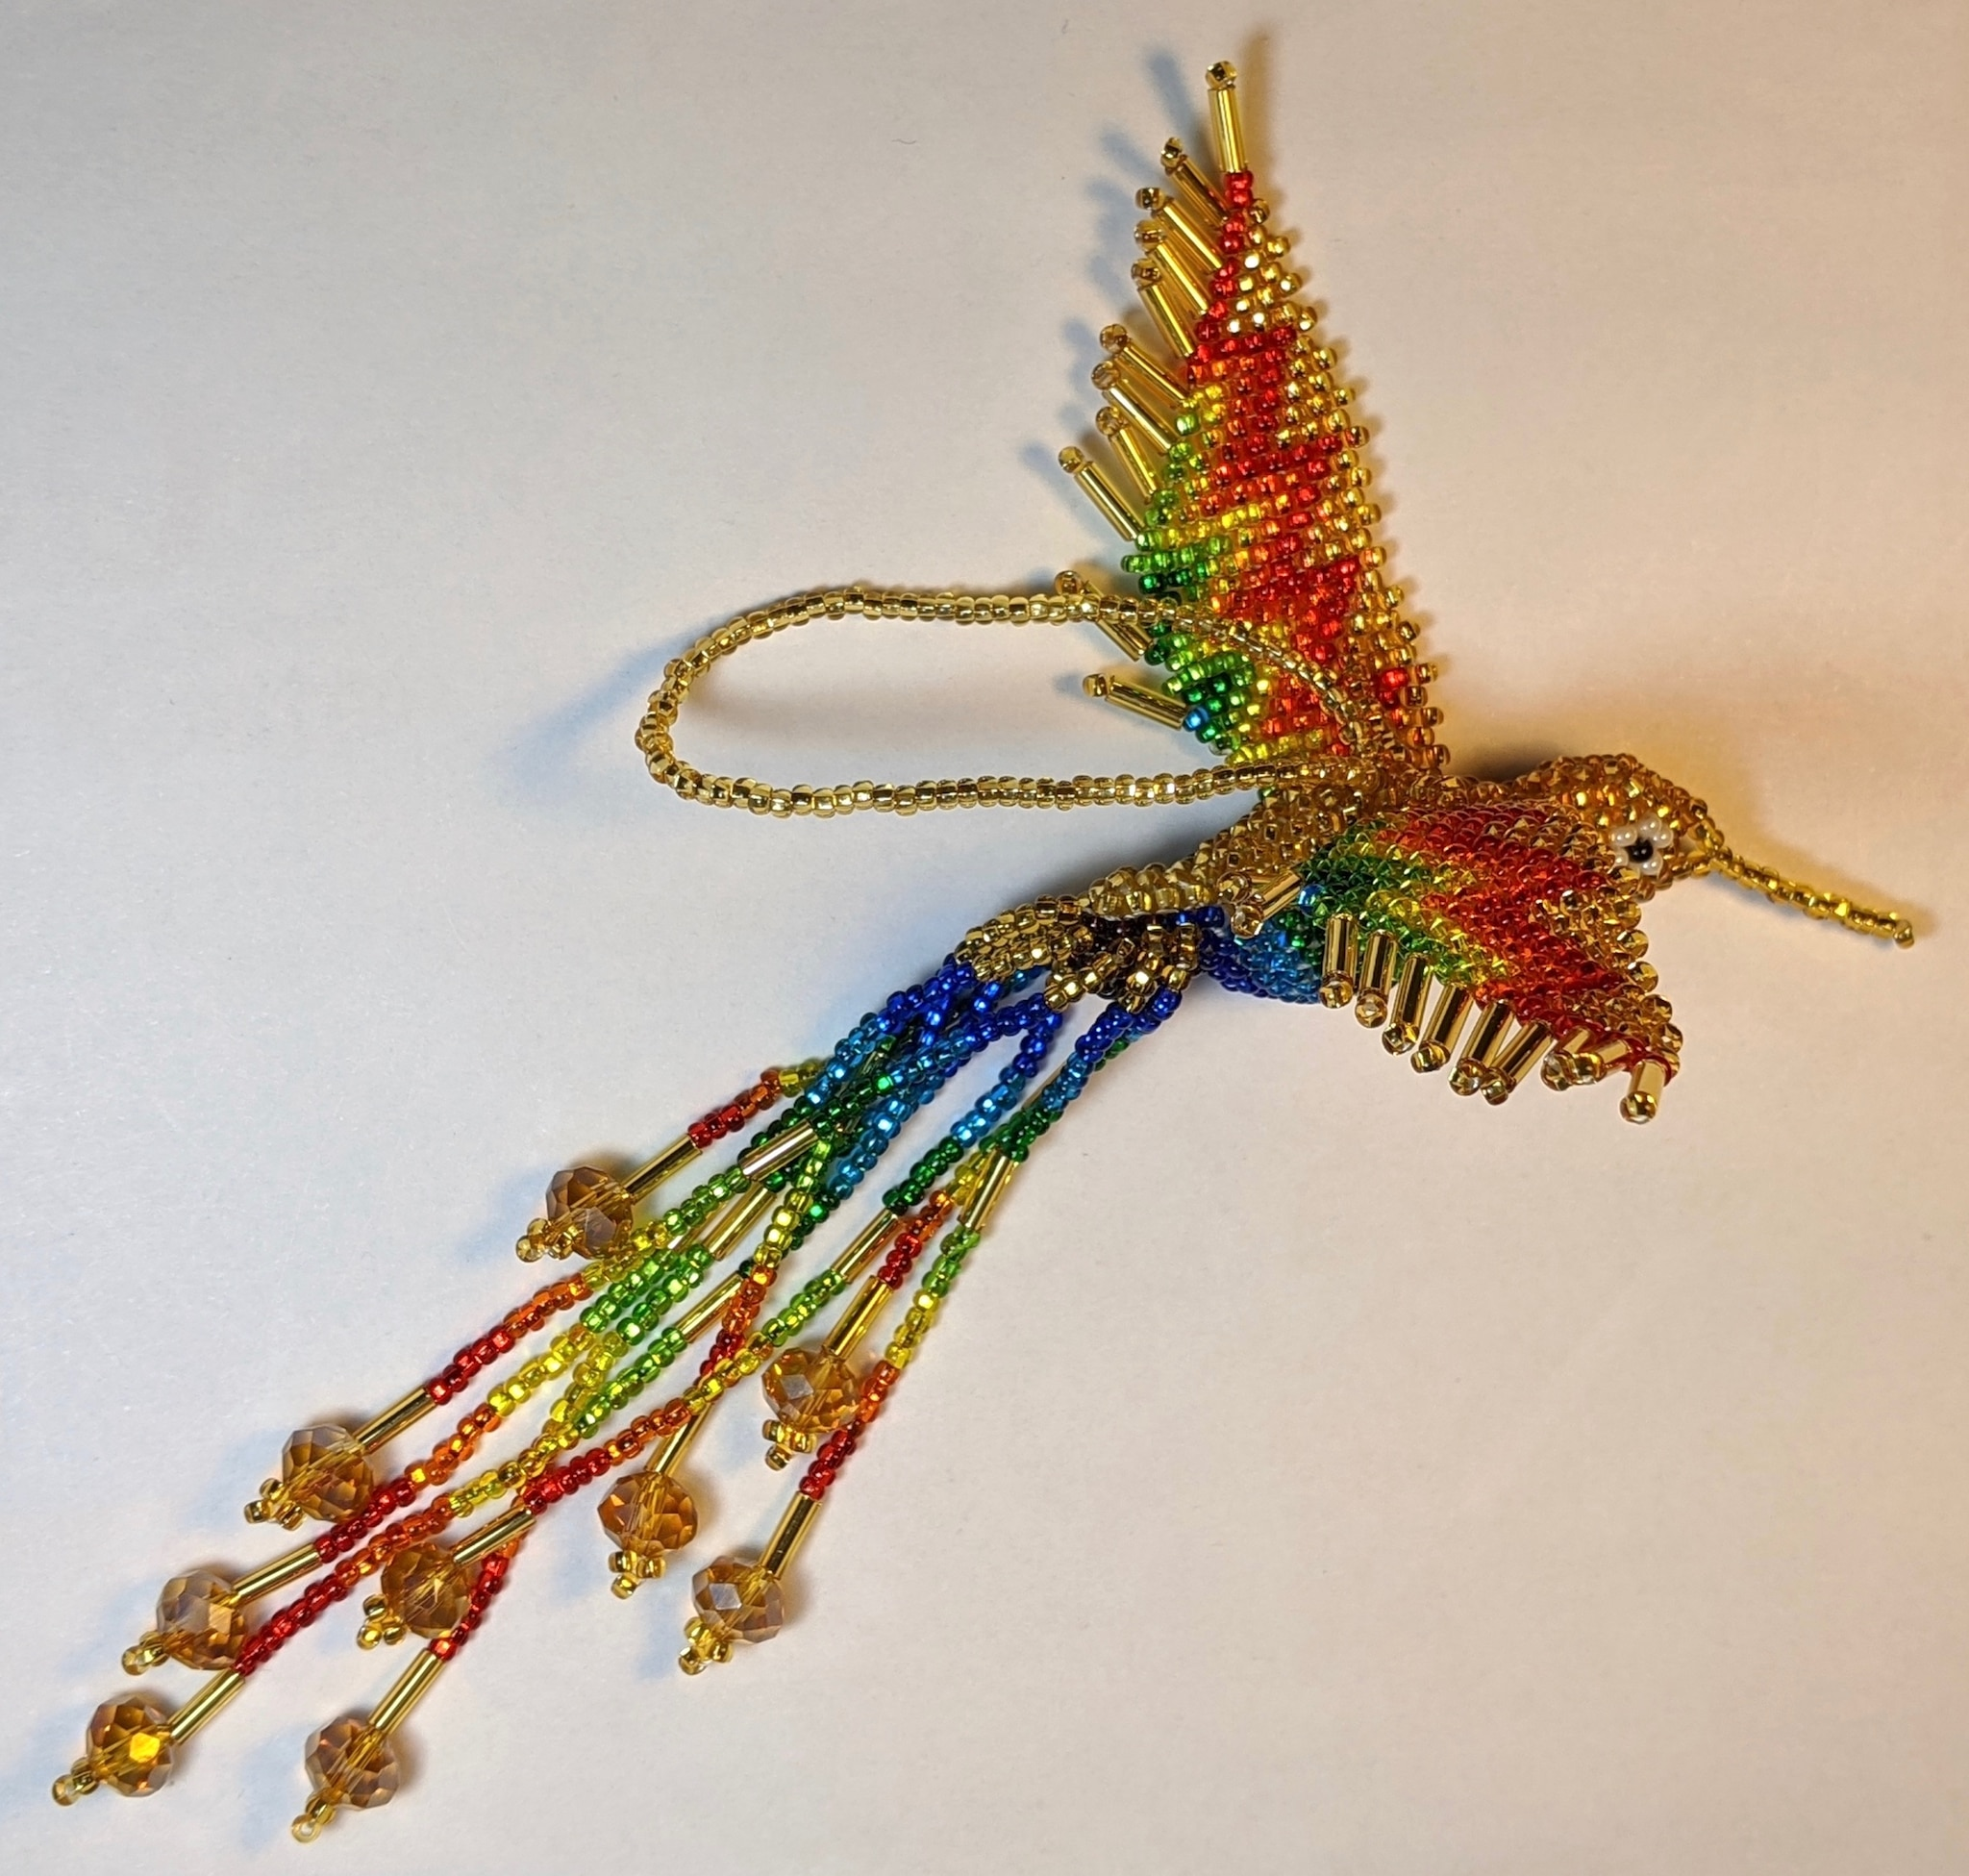 Hummingbird Beaded Ornament - Rainbow with Light Gold